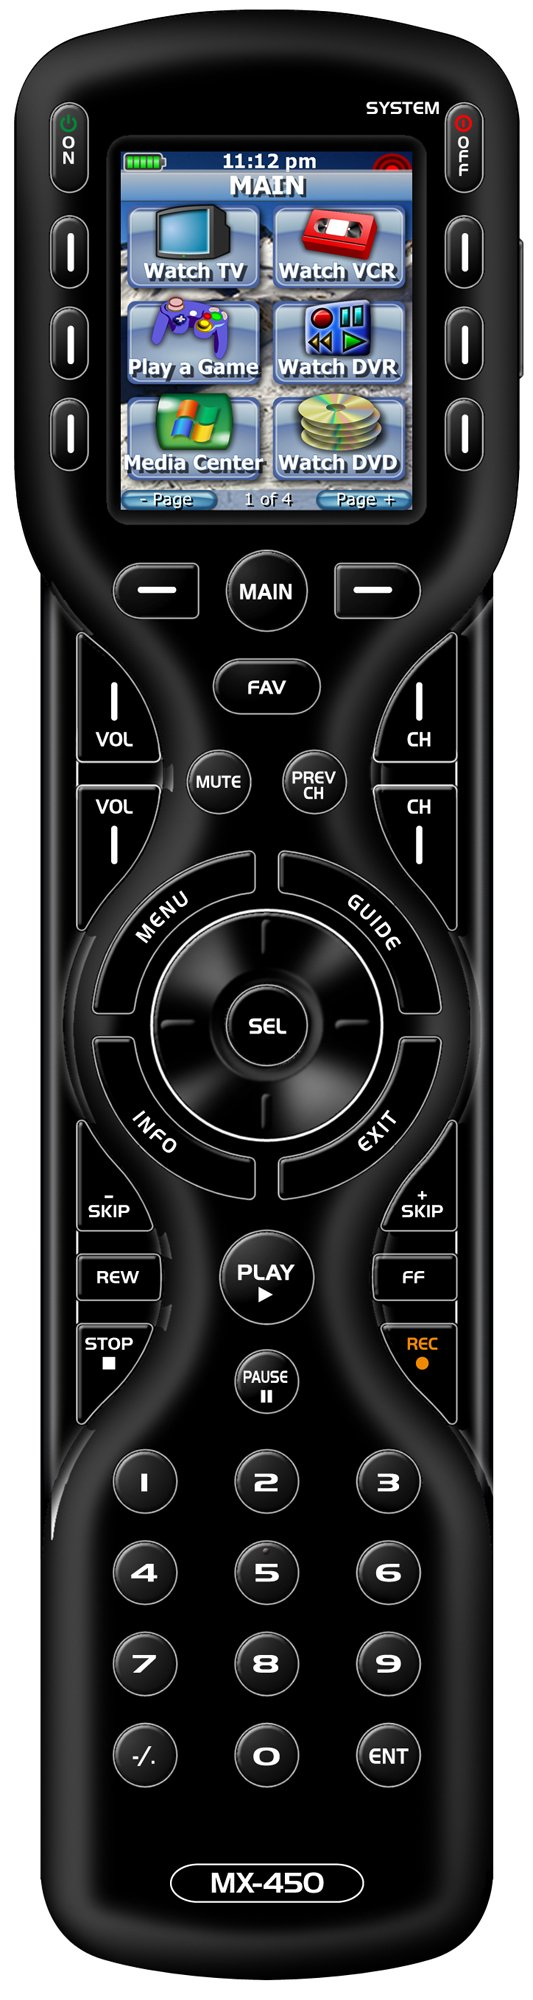 Universal Remote Control MX-450 Custom Programmable Remote Control with On-Screen Macro Editing.